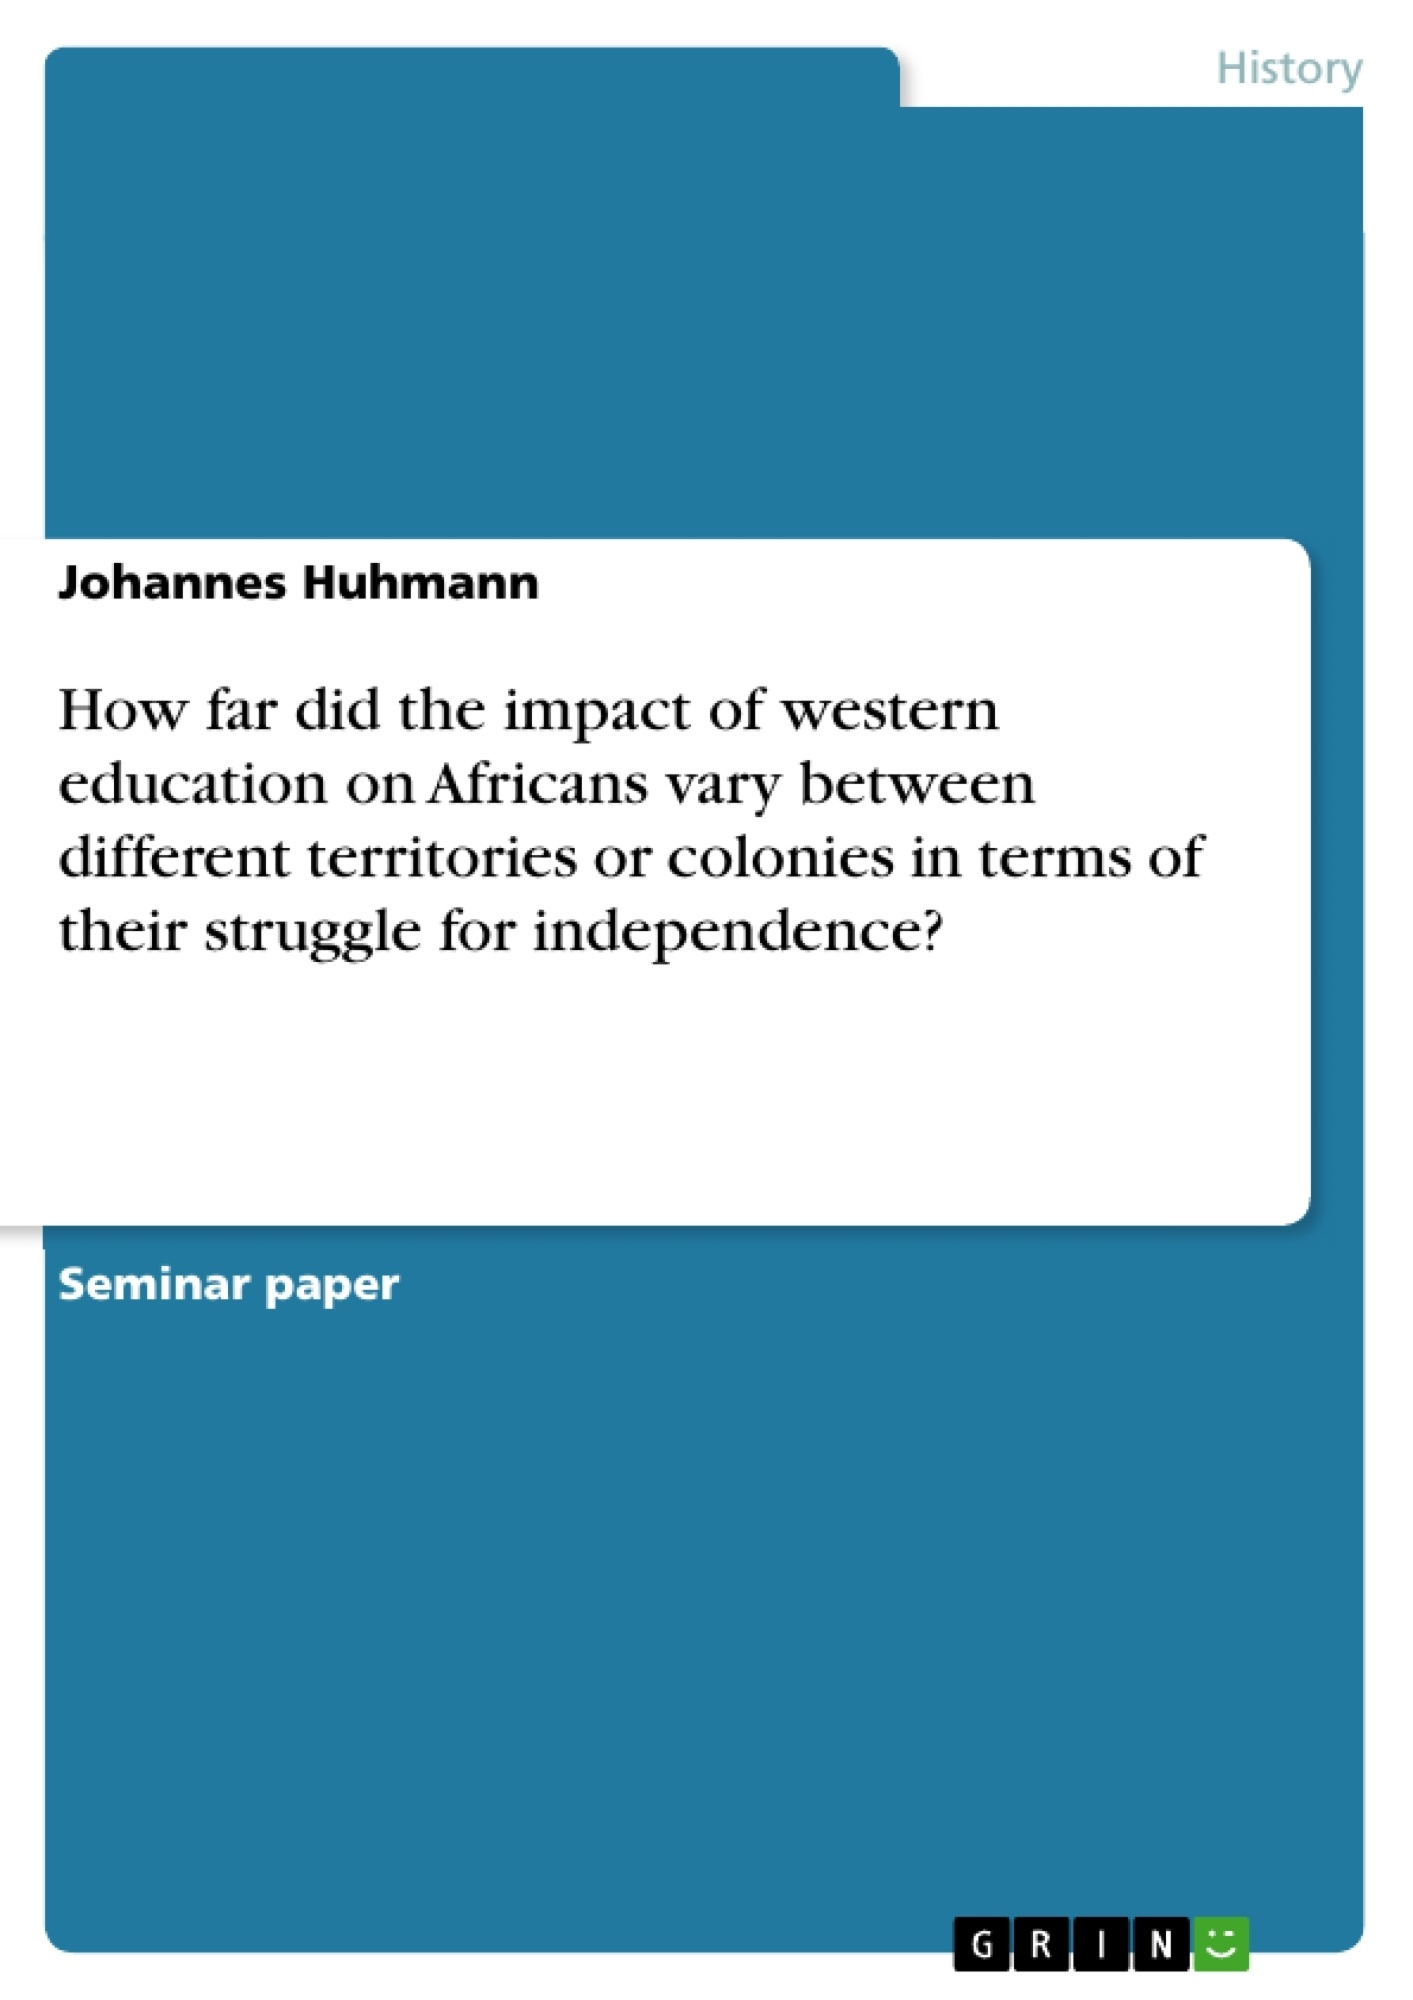 Title: How far did the impact of western education on Africans vary between different territories or colonies in terms of their struggle for independence?